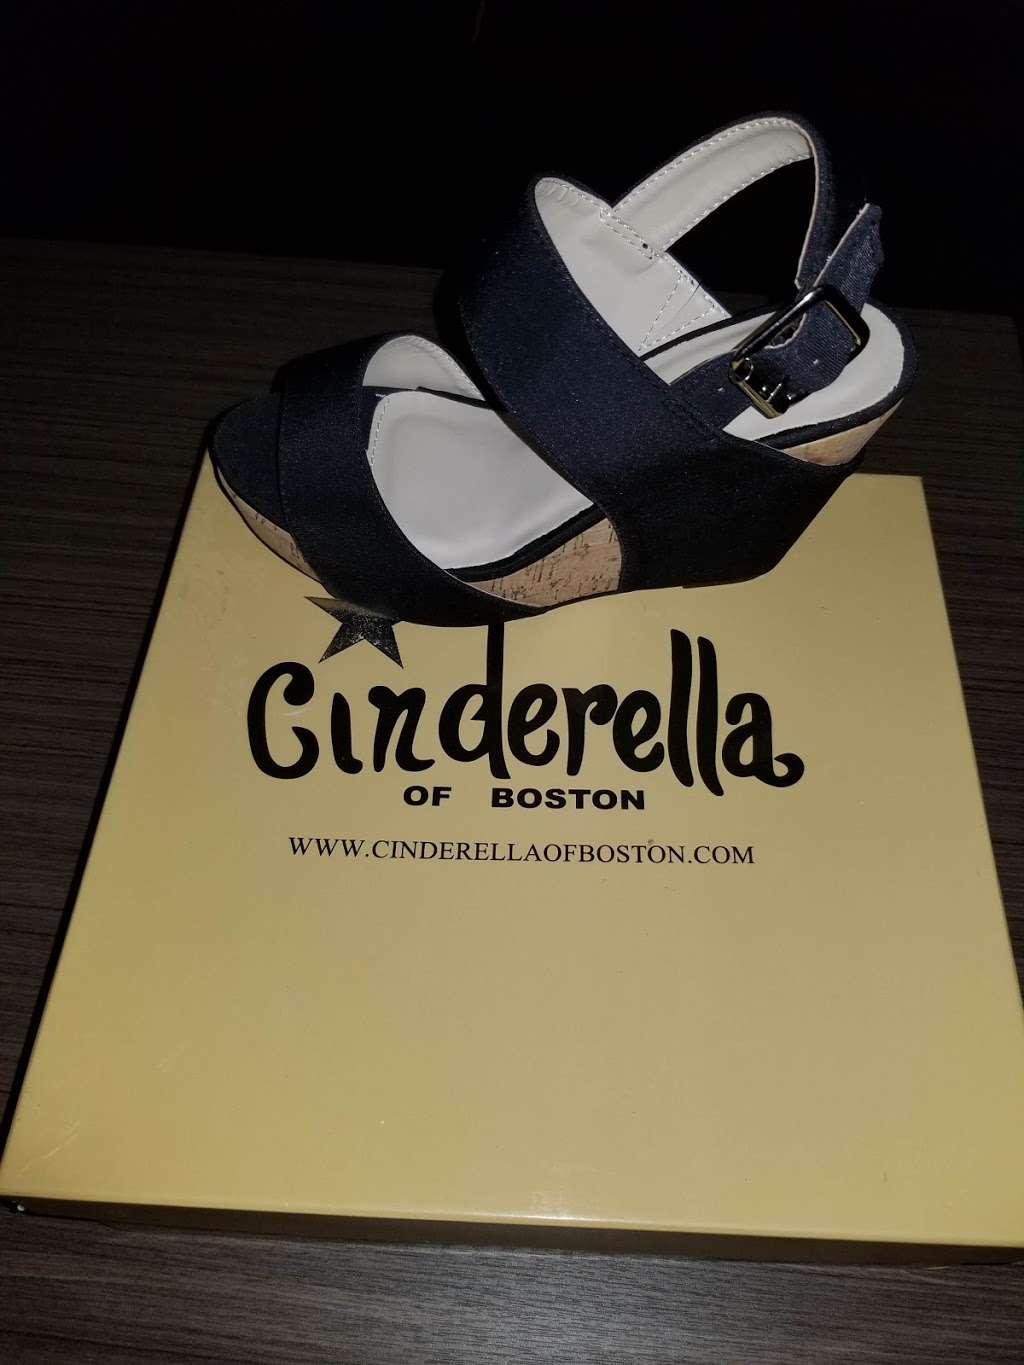 Cinderella of Boston - shoe store  | Photo 4 of 9 | Address: 6452 Industry Way A, Westminster, CA 92683, USA | Phone: (714) 899-2020